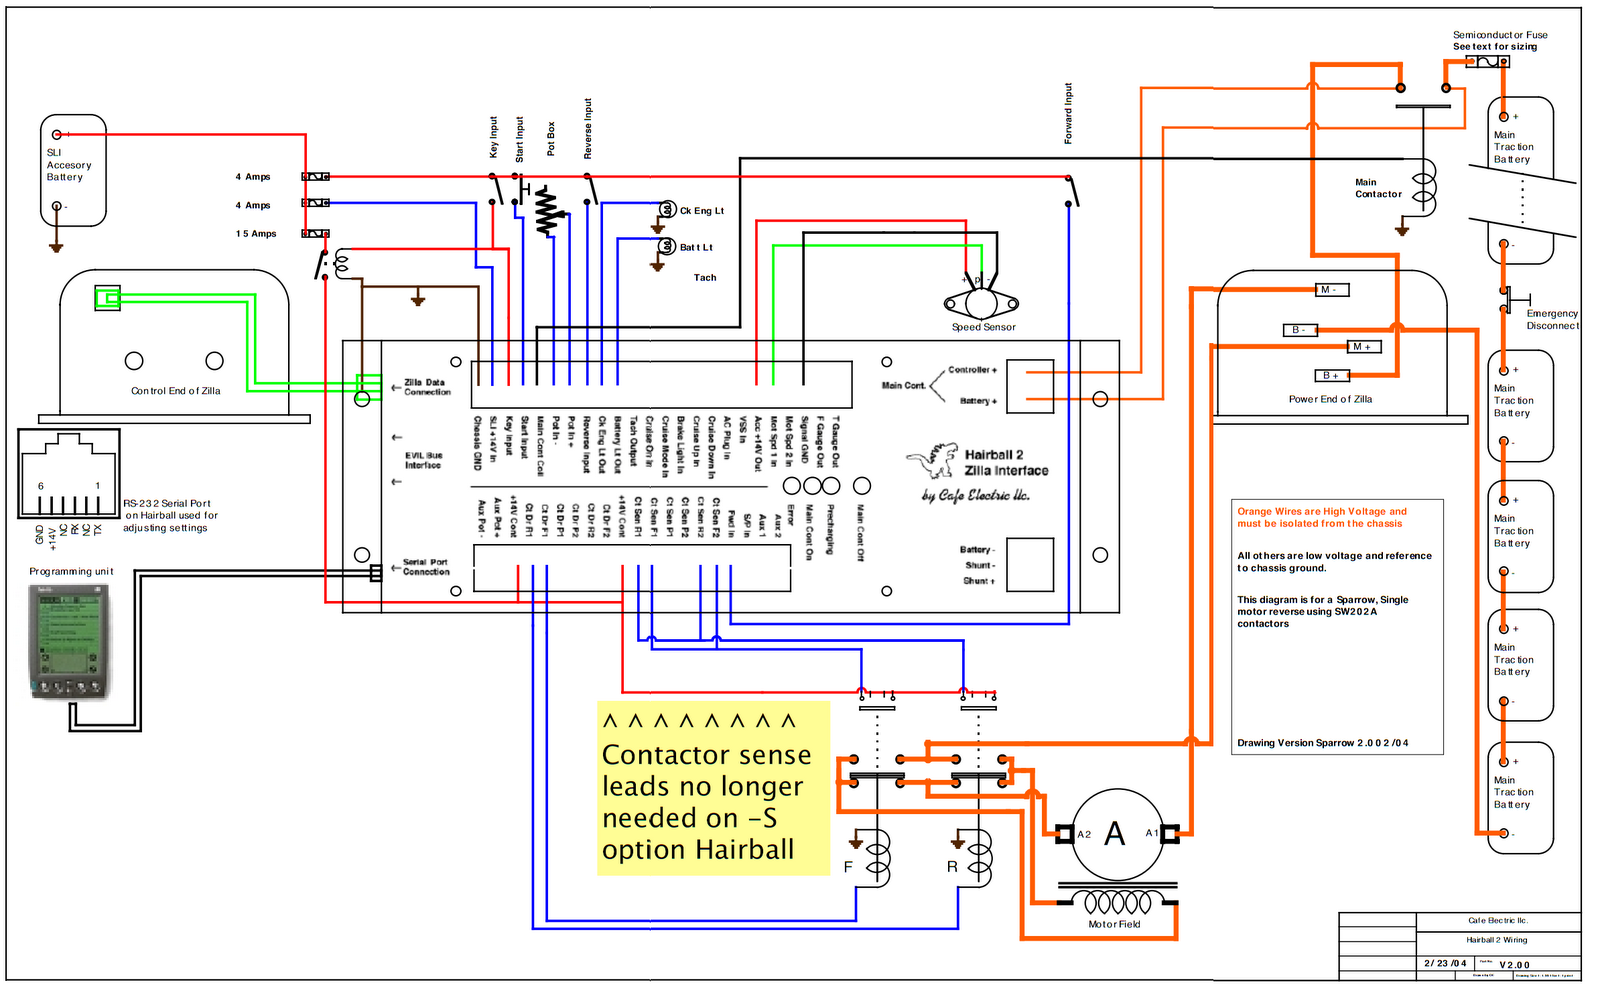 36v electric scooter wiring diagram electric scooter wiring diagrams electric scooter wiring diagram electric mobility scooter [ 1600 x 997 Pixel ]